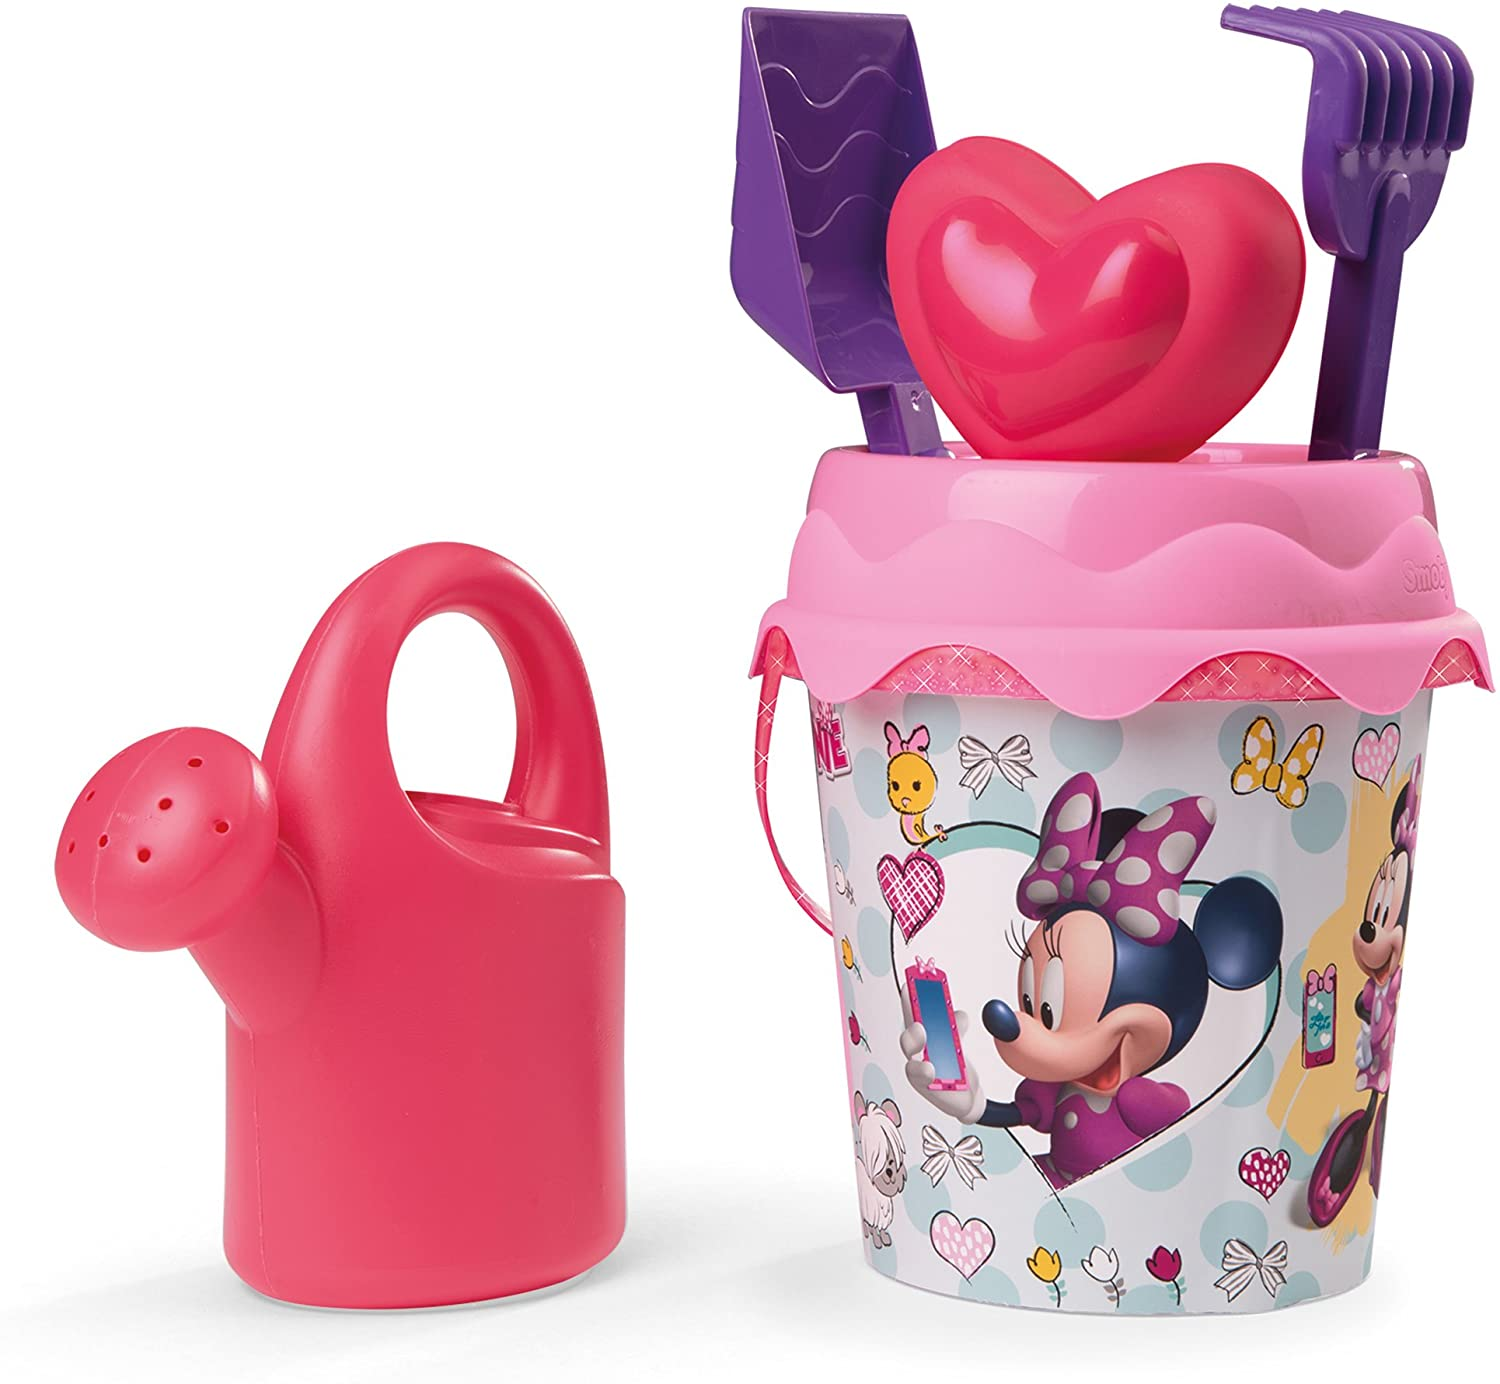 CUBO MM COMPLETO MINNIE 862073